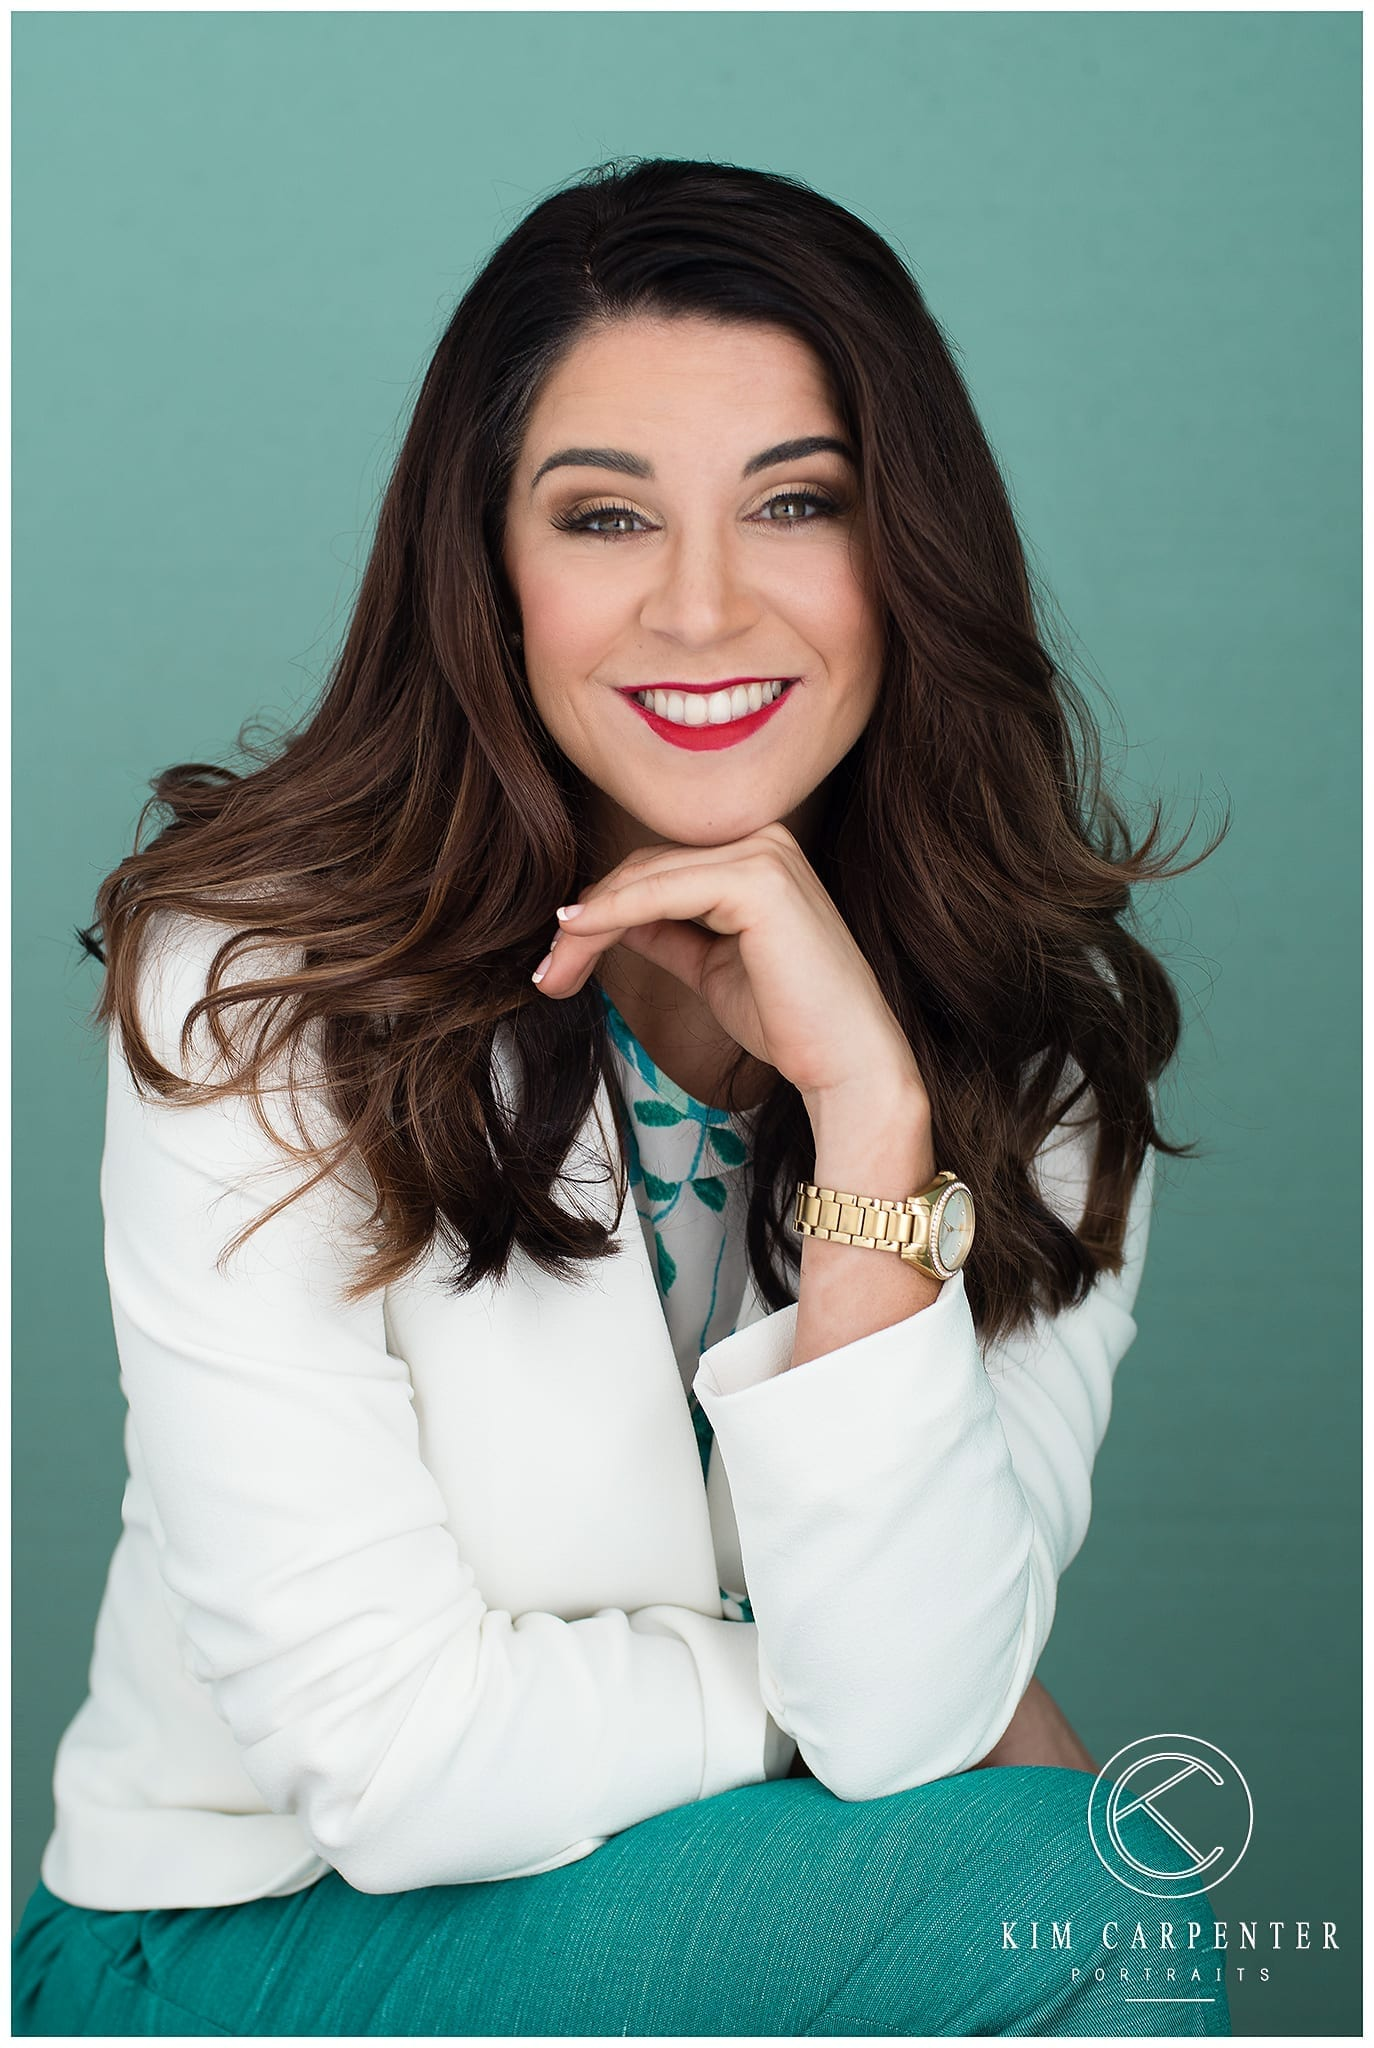 Lady wearing a white jacket and has a watch on her wrist. Lakeland Photographer, professional headshots